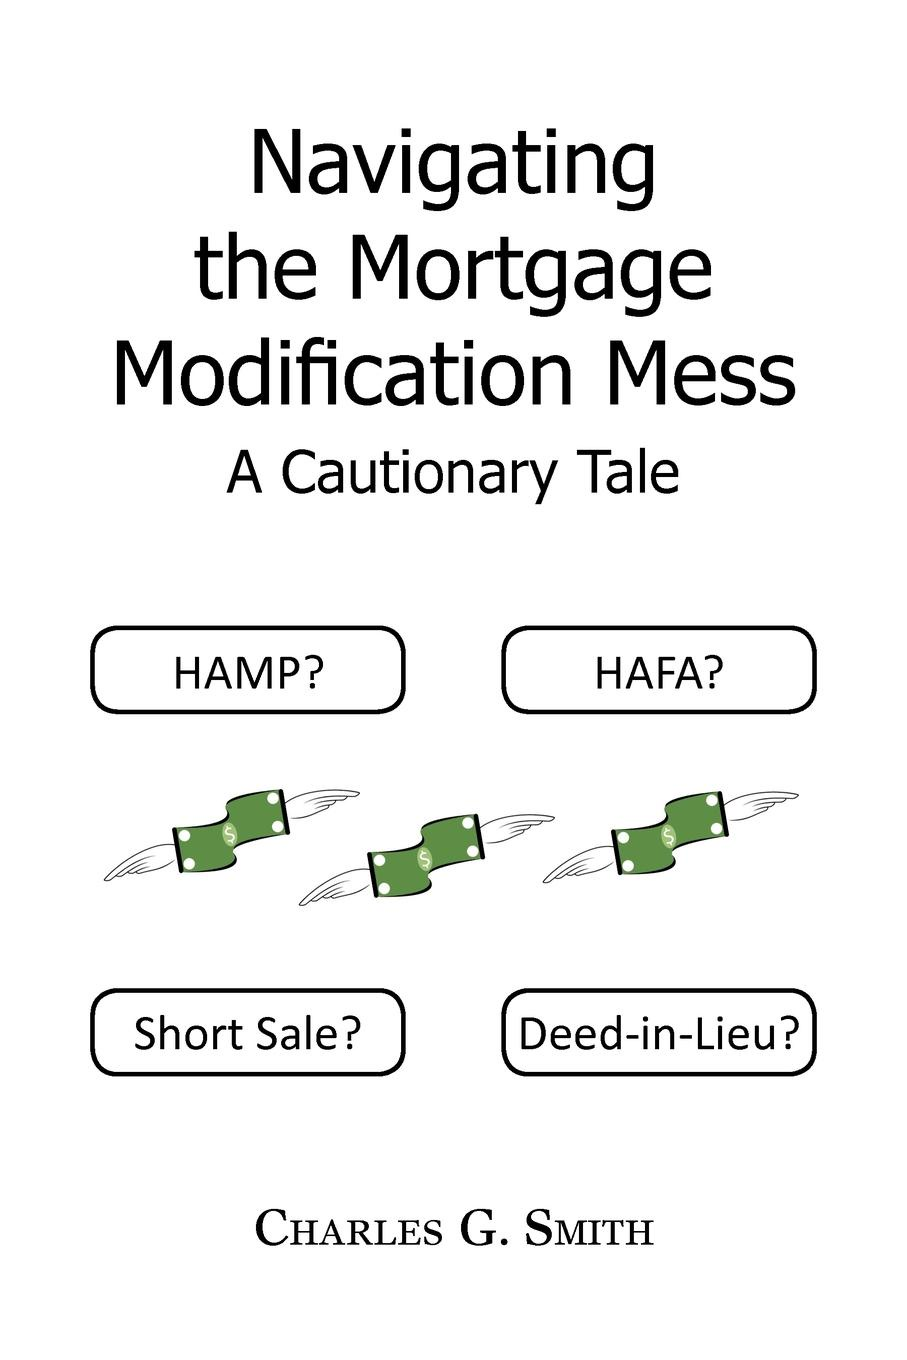 Charles G. Smith Navigating the Mortgage Modification Mess - A Cautionary Tale. A Cautionary Tale